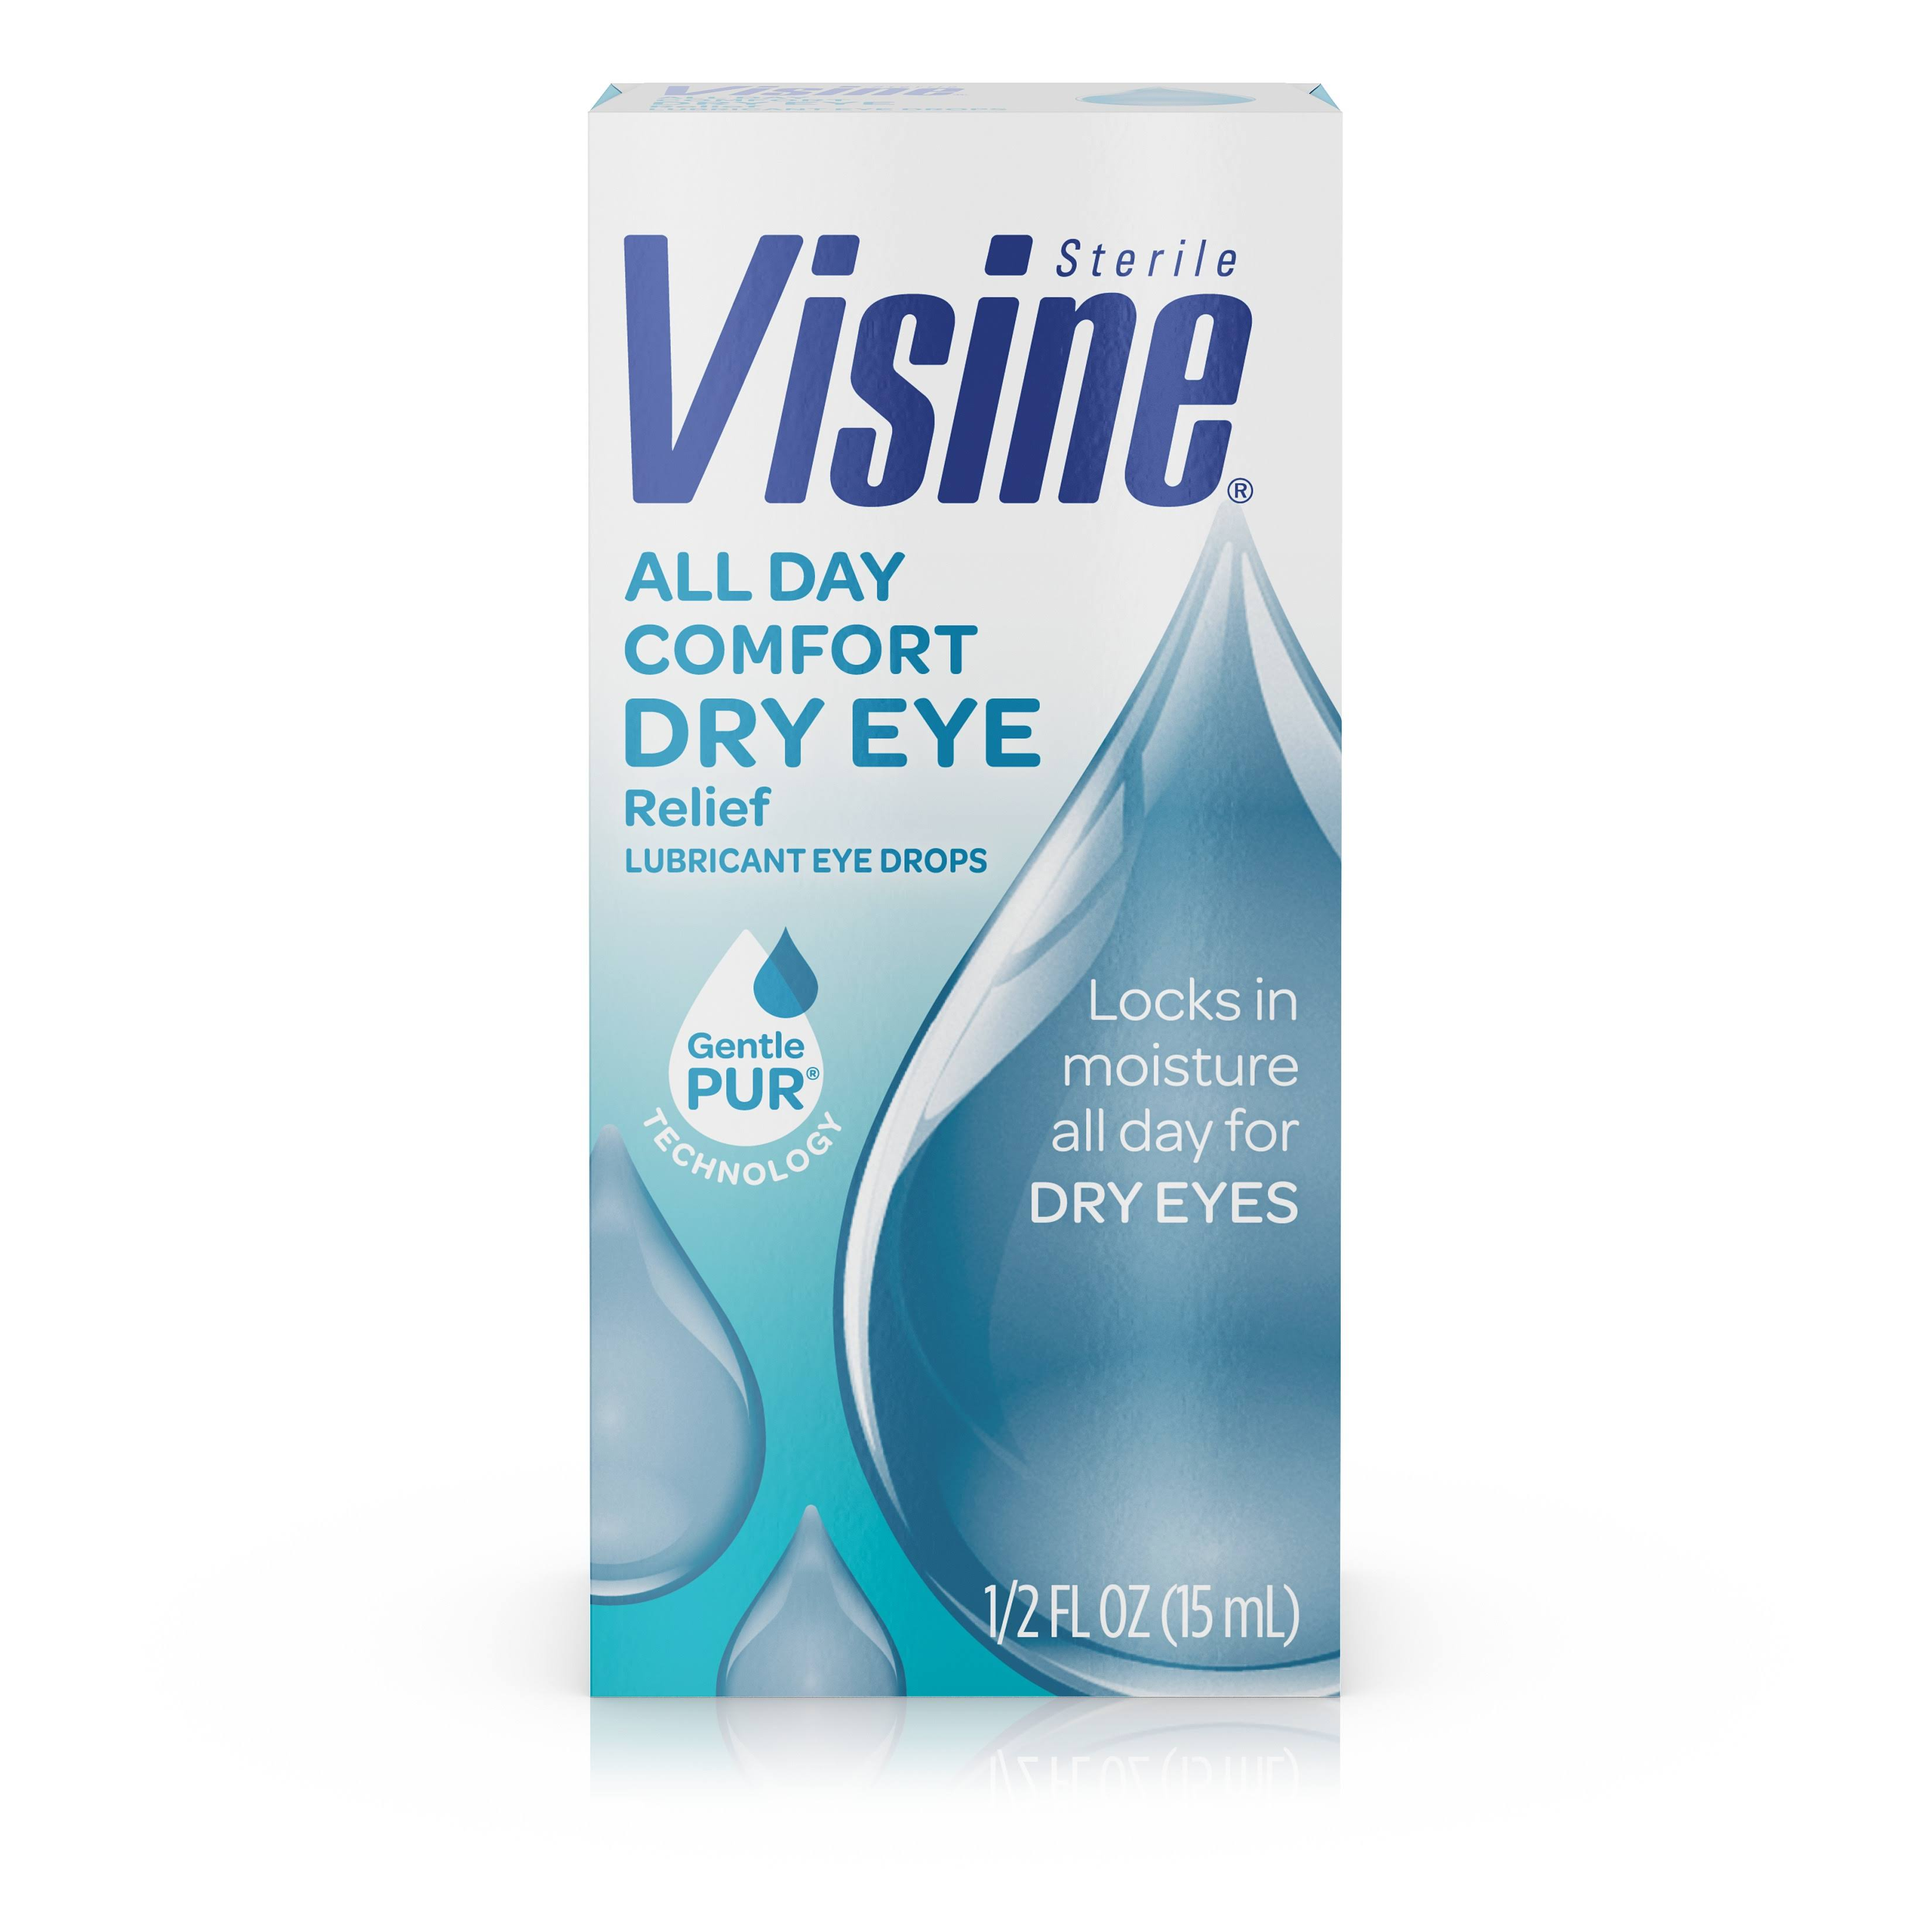 Visine Sterile All Day Comfort Dry Eye Relief Lubricant Eye Drops - 15ml